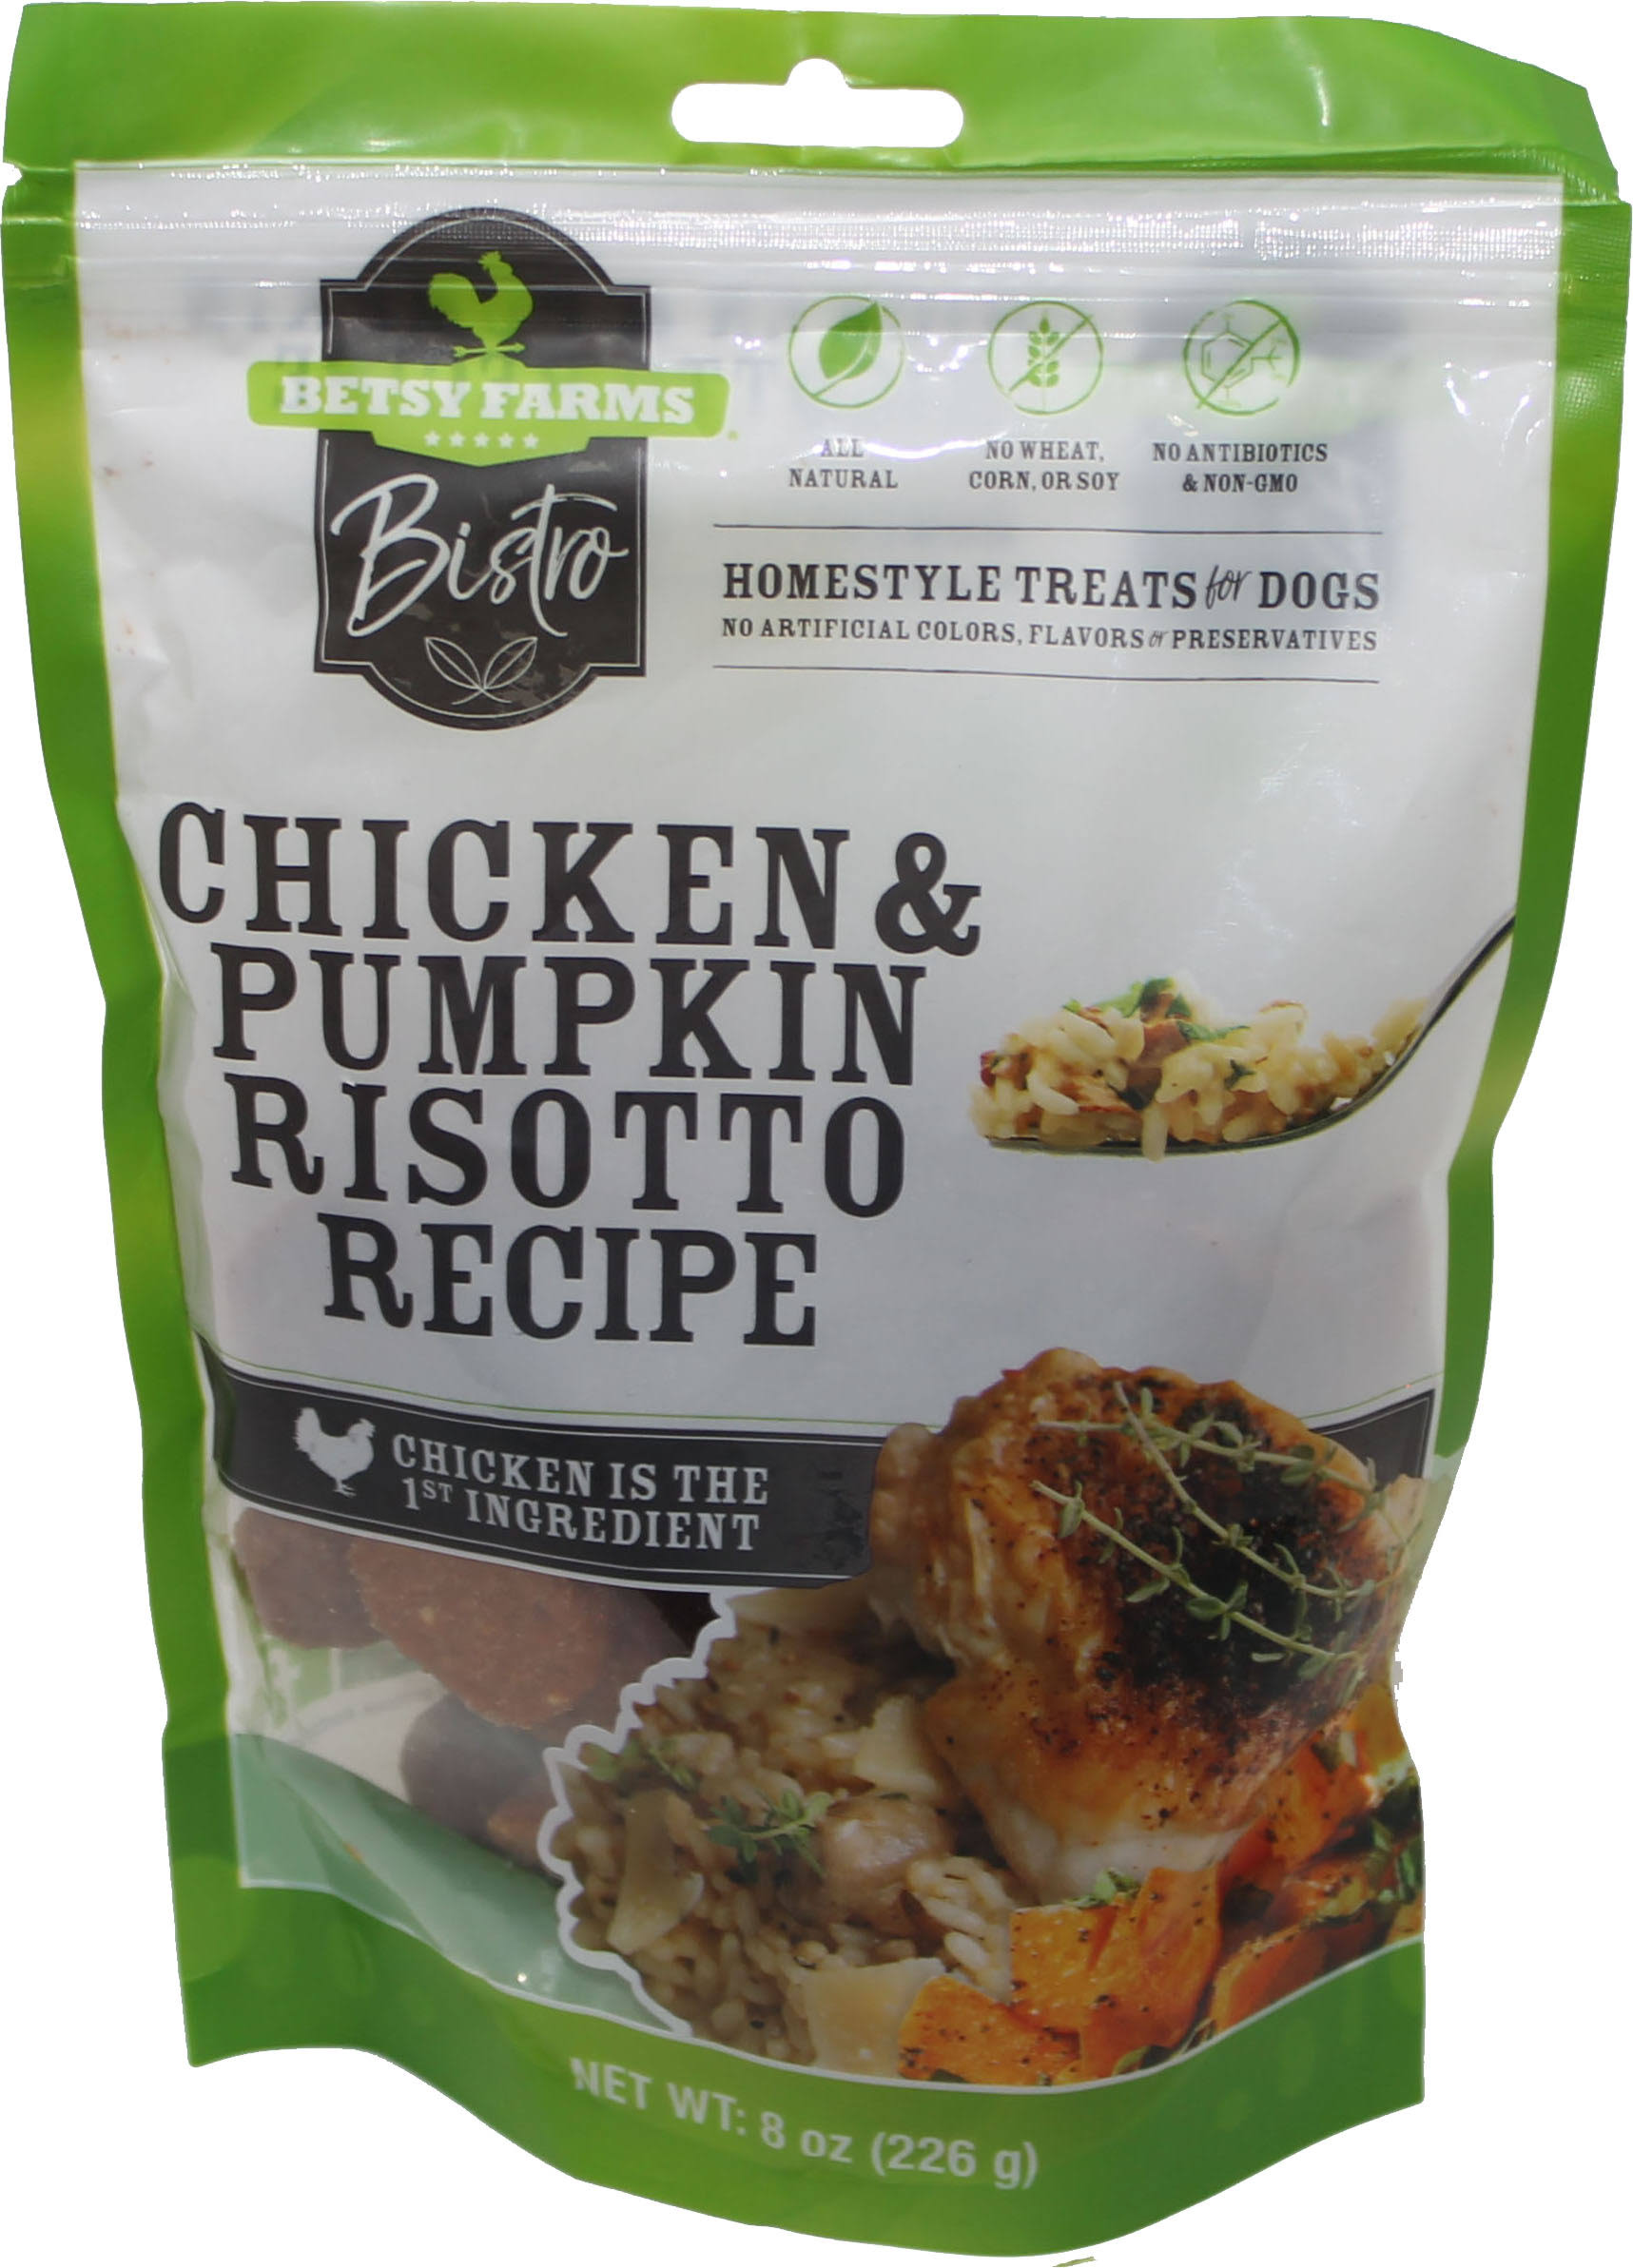 Betsy Farms Bistro Treats for Dogs, Chicken & Pumpkin Risotto Recipe - 8 oz